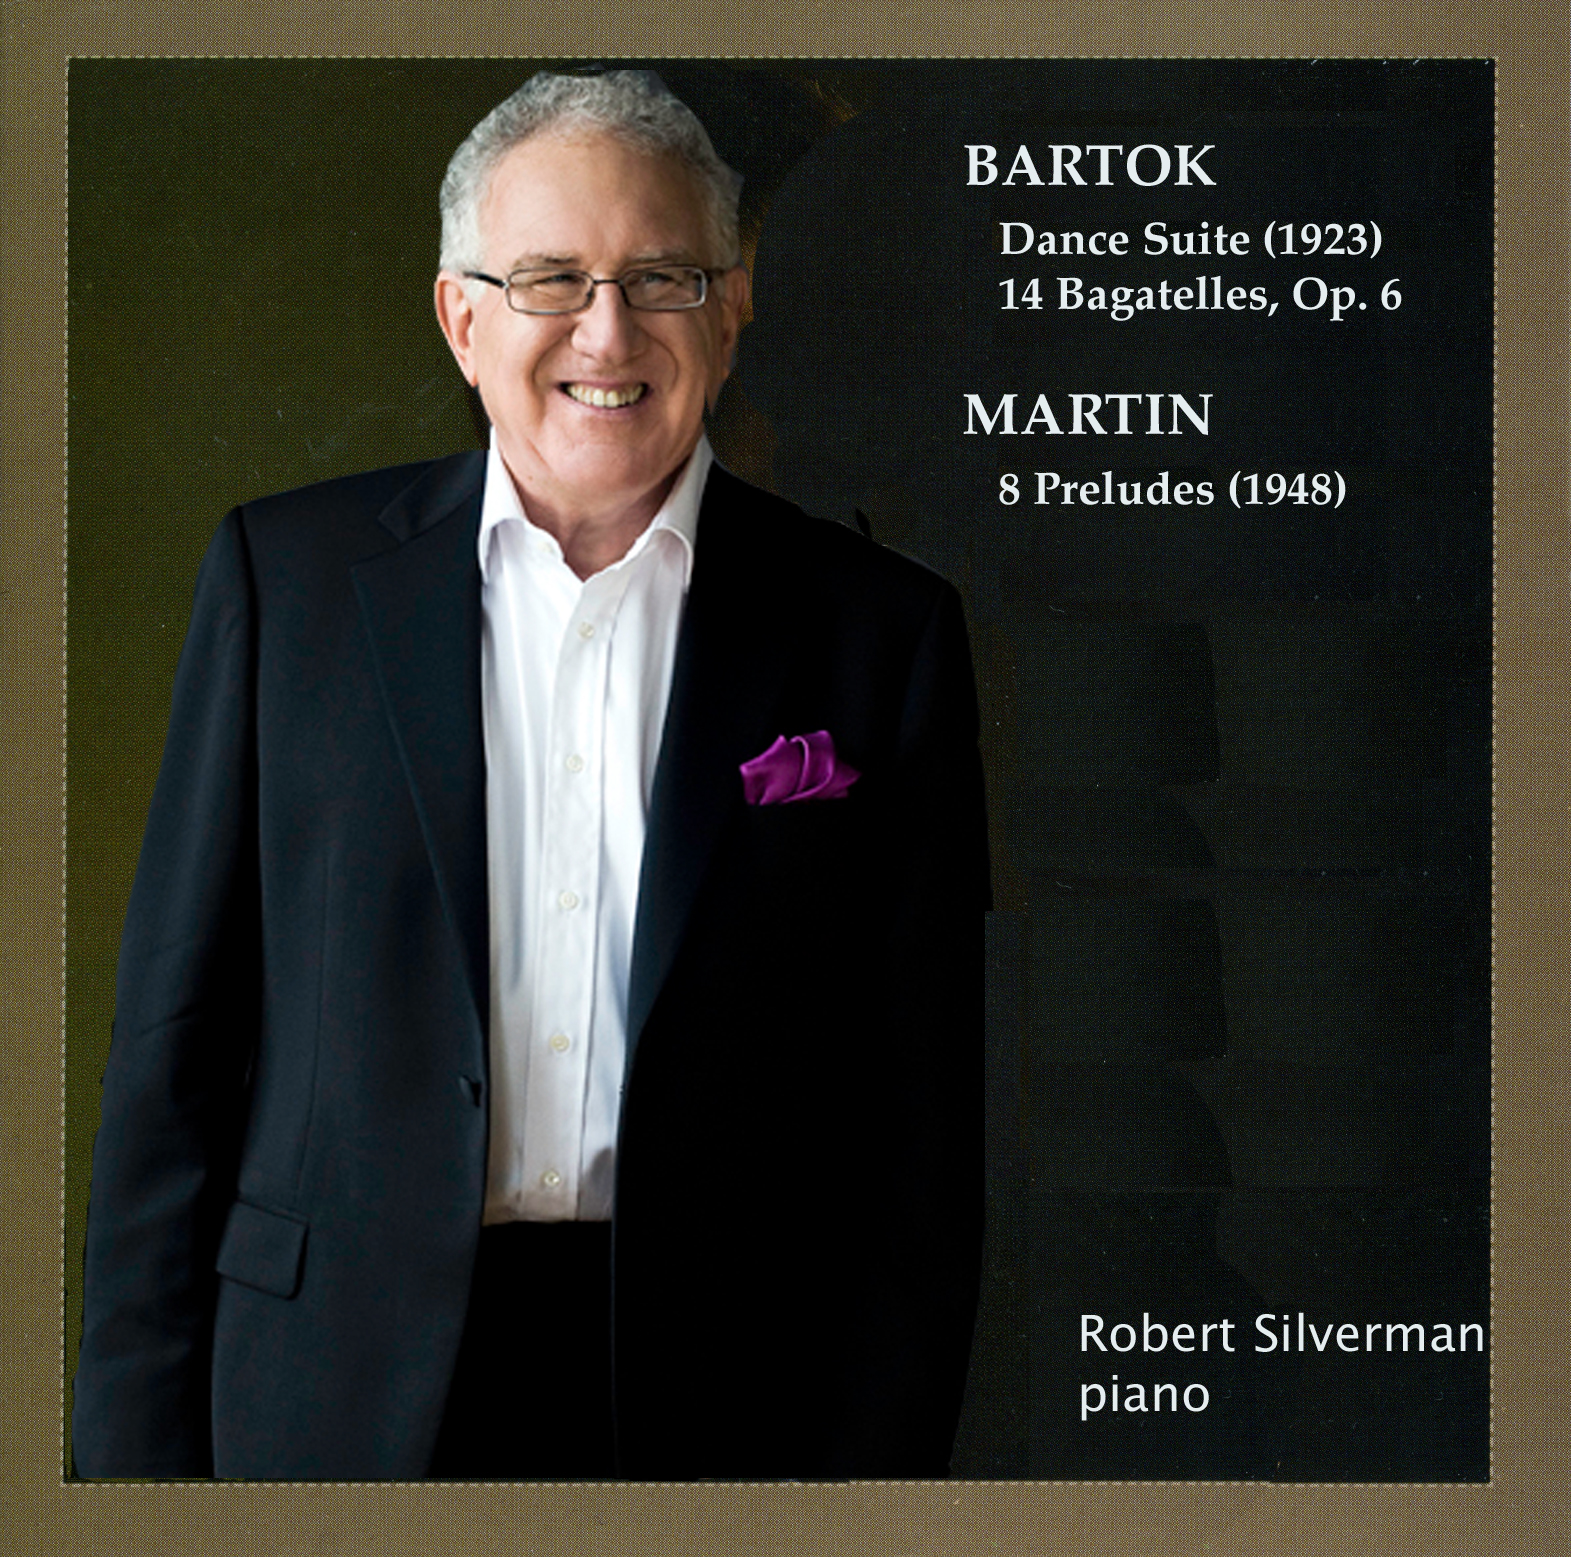 Robert Silverman performs Bartok and Martin